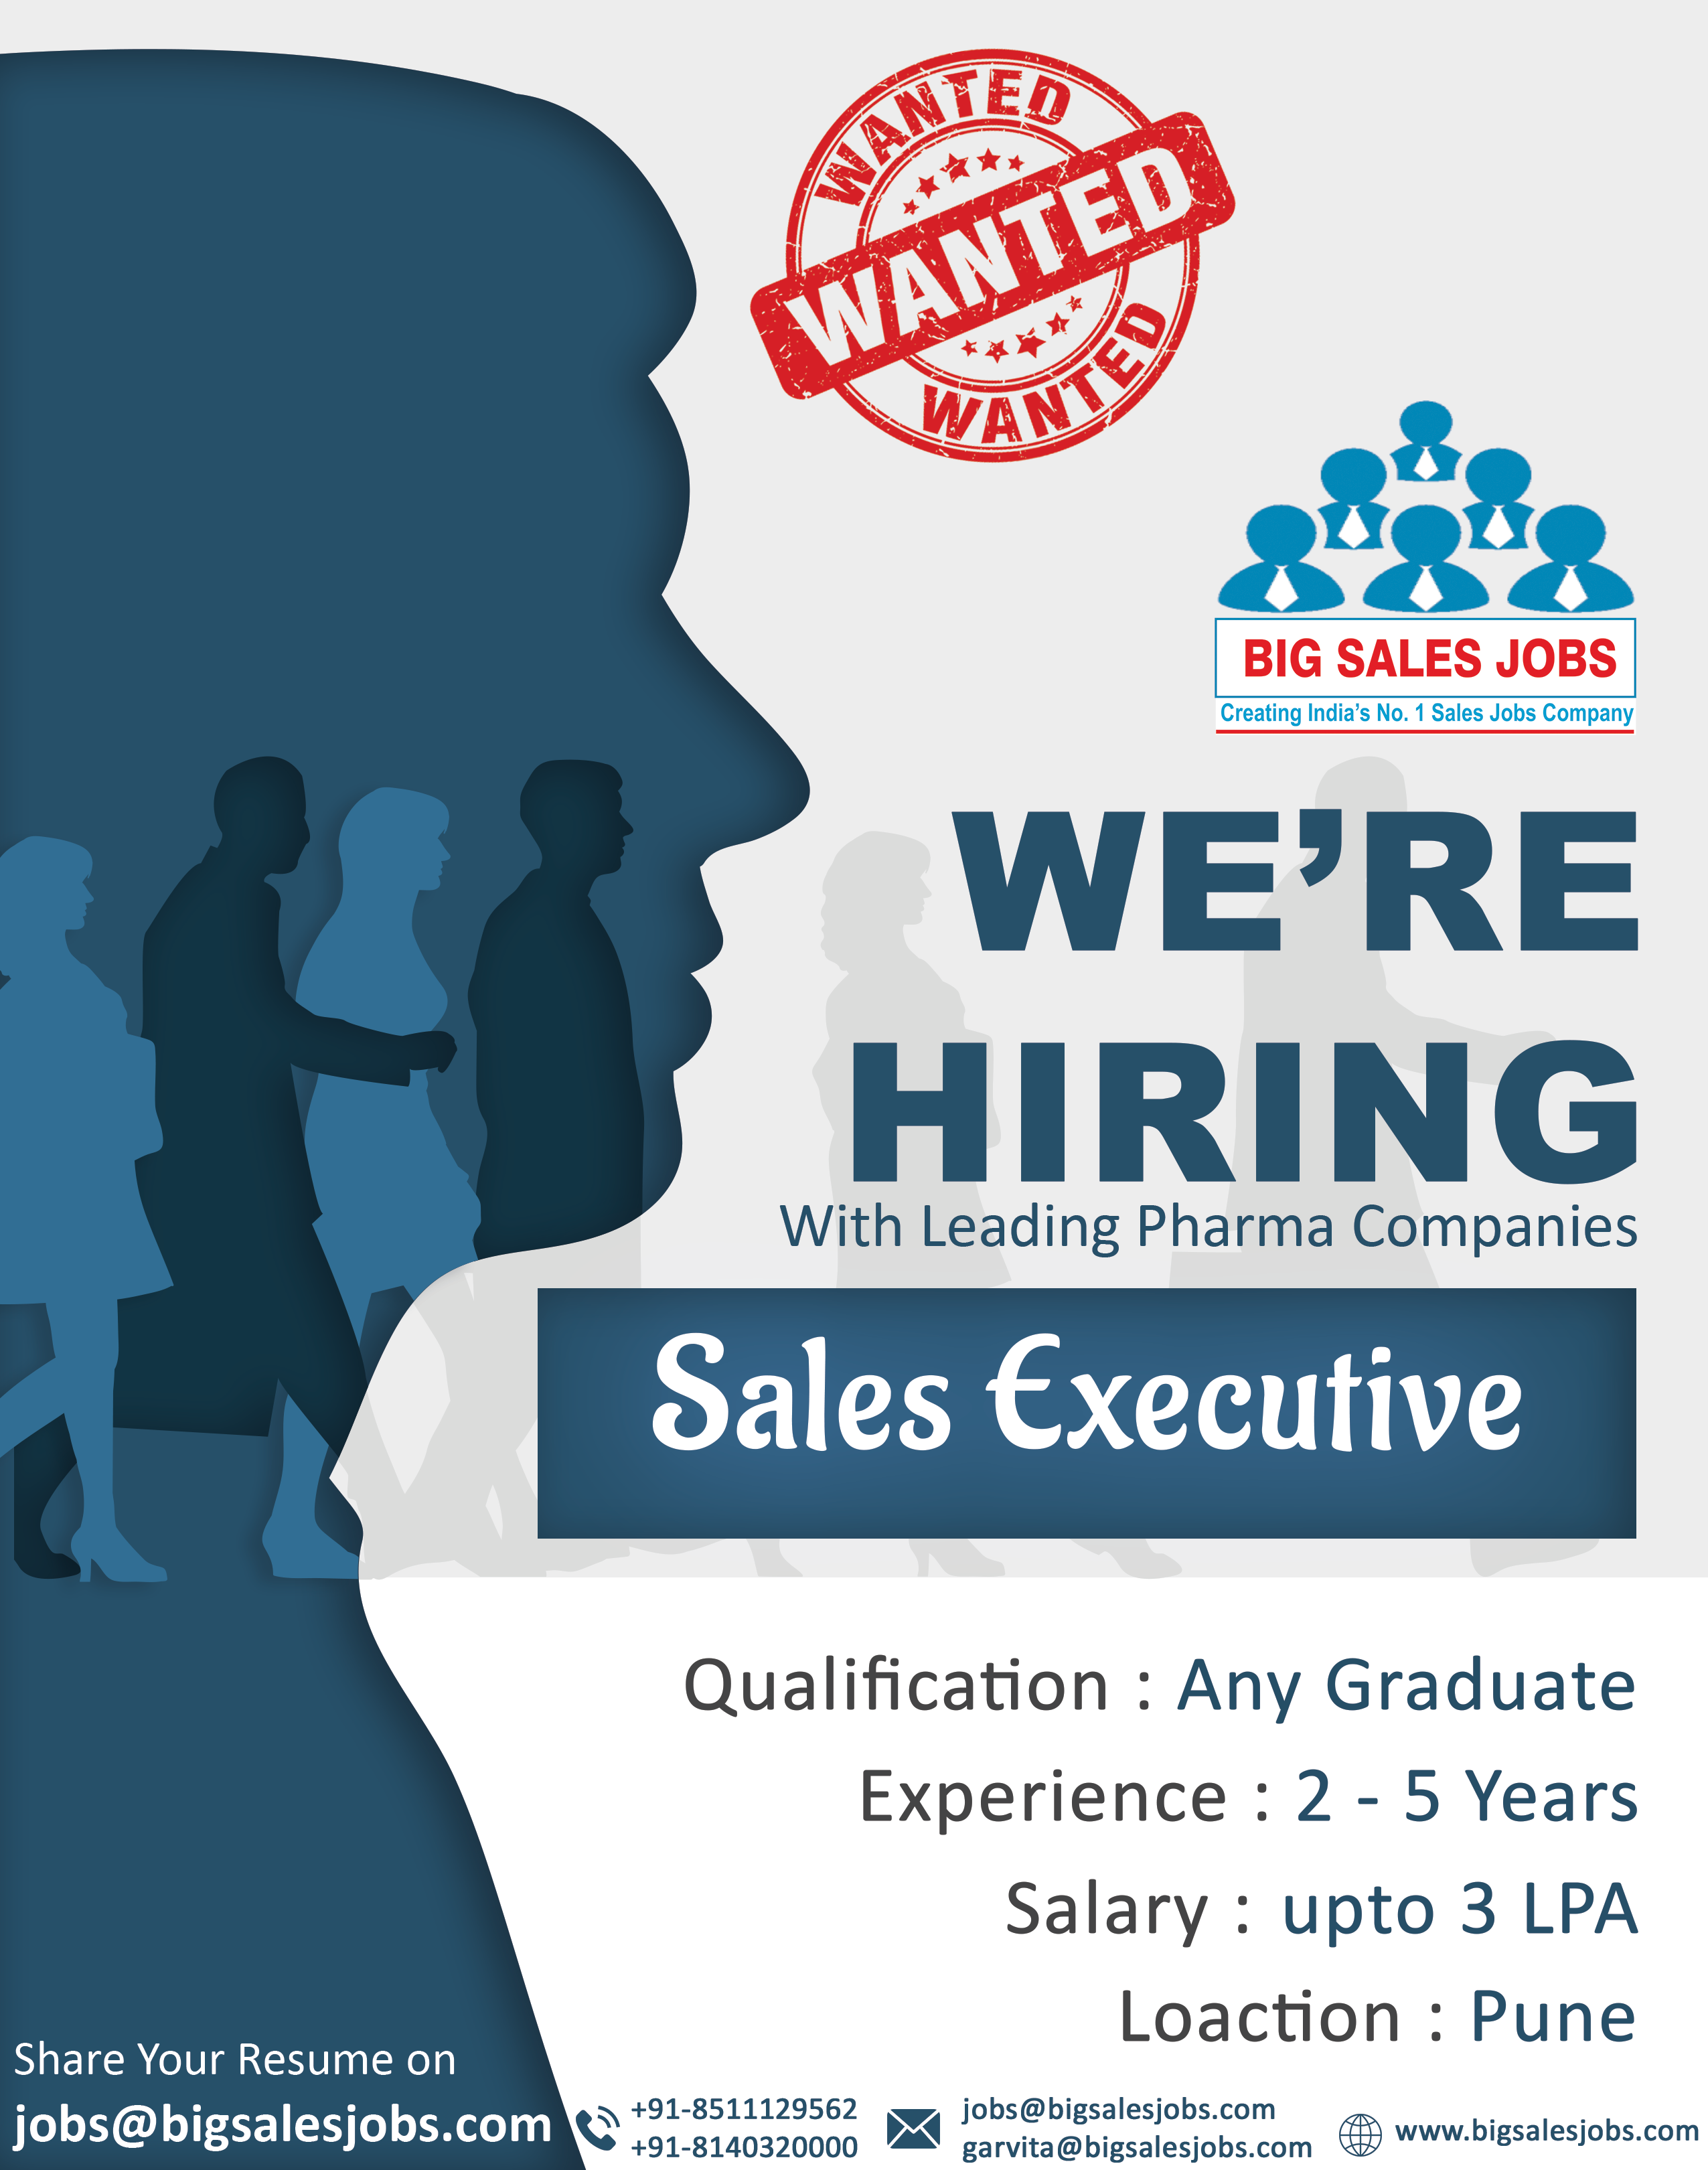 Sales Opening For Sales Executive Qualification Any Graduate Experience 2 5 Years Ctc Up To 3 Lpa Interested Candidate Send Your R Desain Brosur Brosur